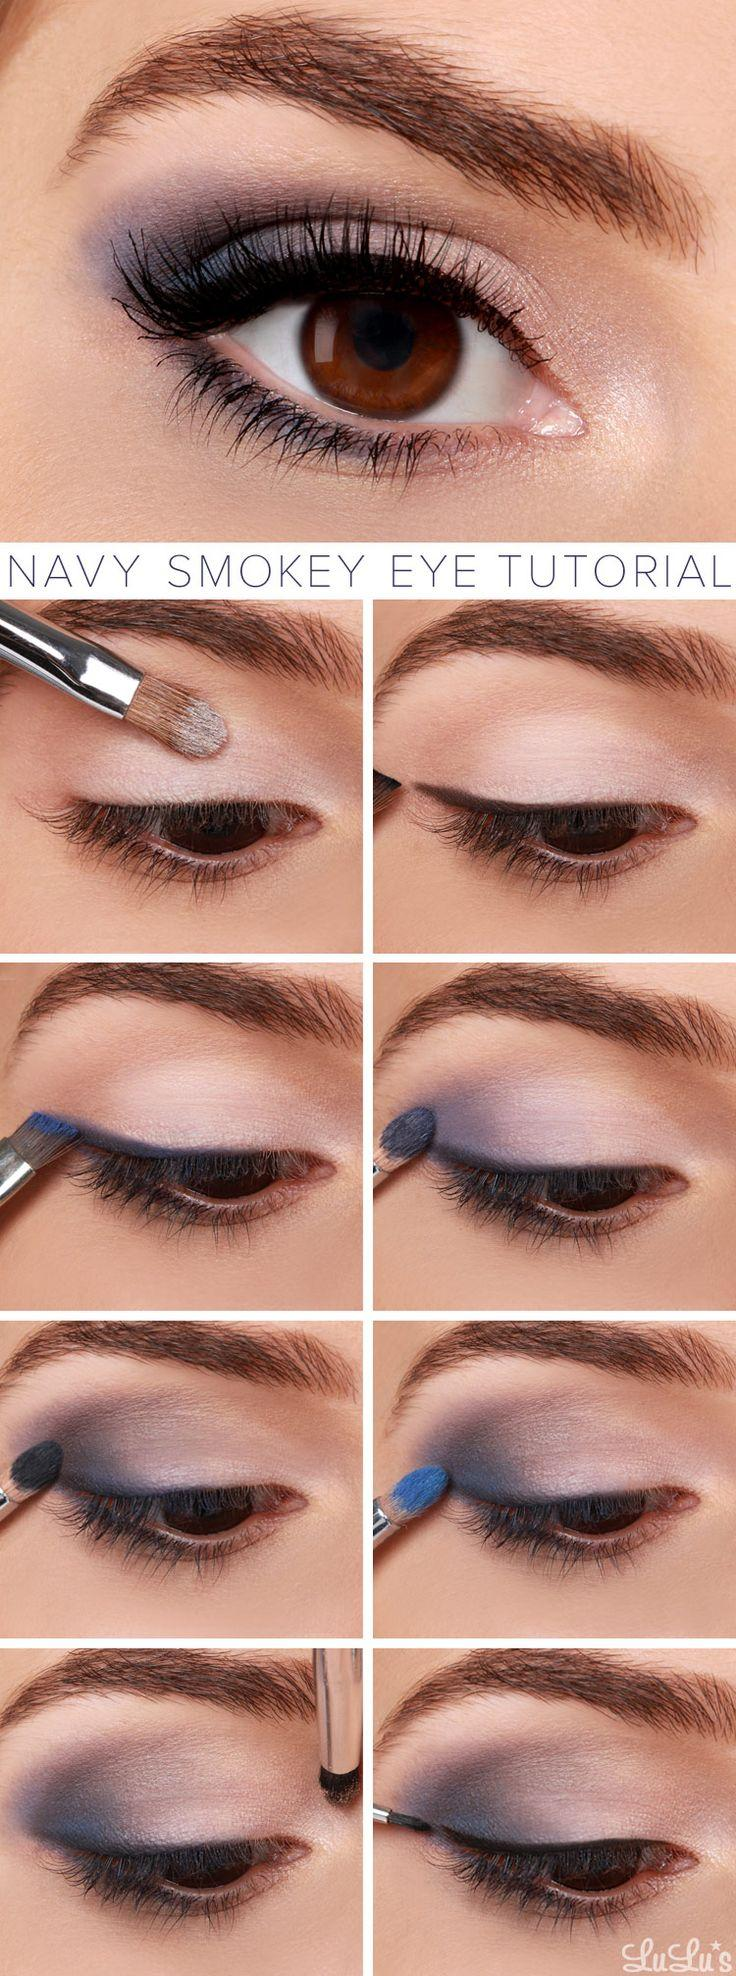 Свадьба - Lulus How-To: Navy Smokey Eye Makeup Tutorial